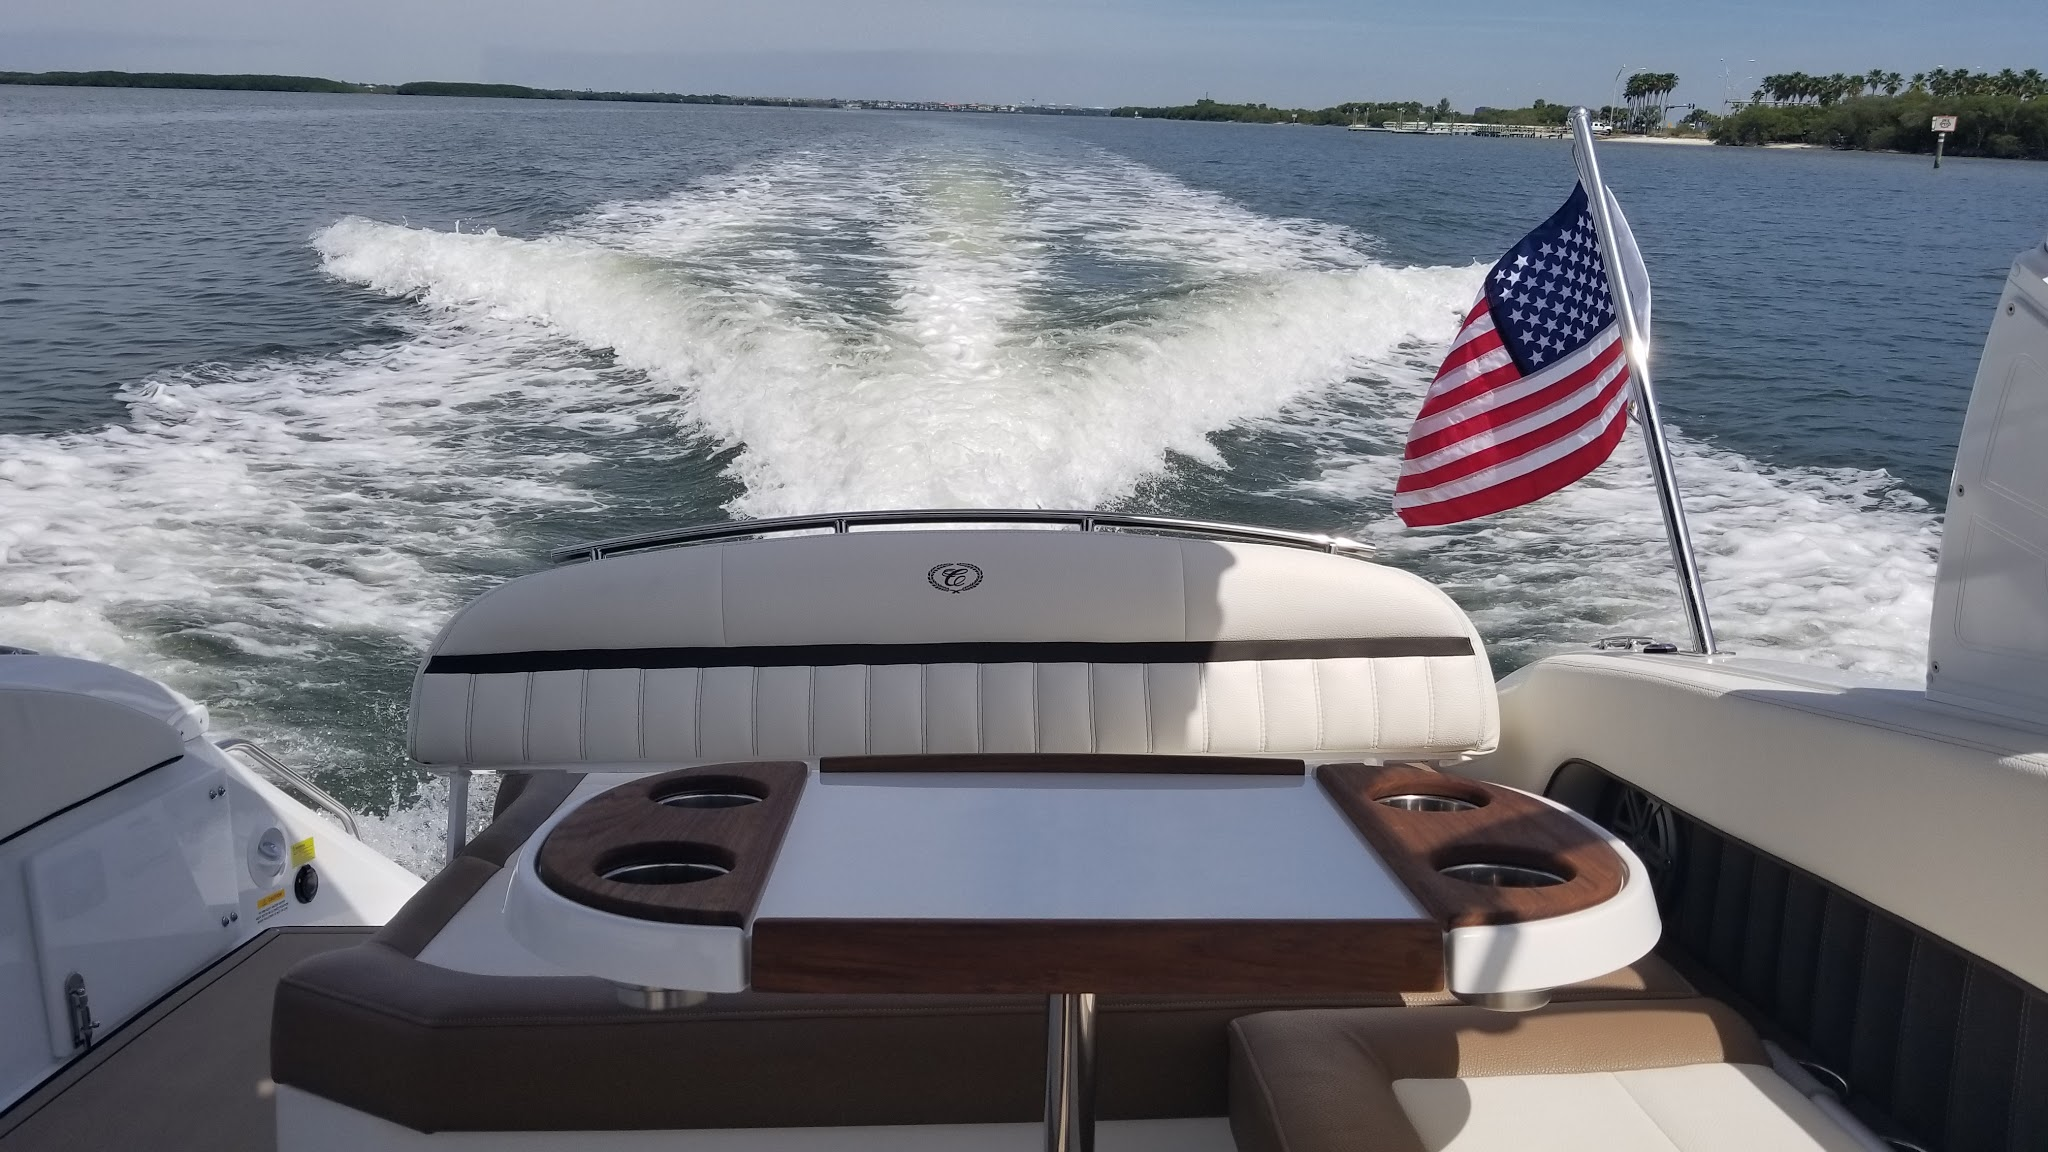 Great wake to tube in boat rentals Florida TAMPA Florida  Cobalt 26SD 2018 26